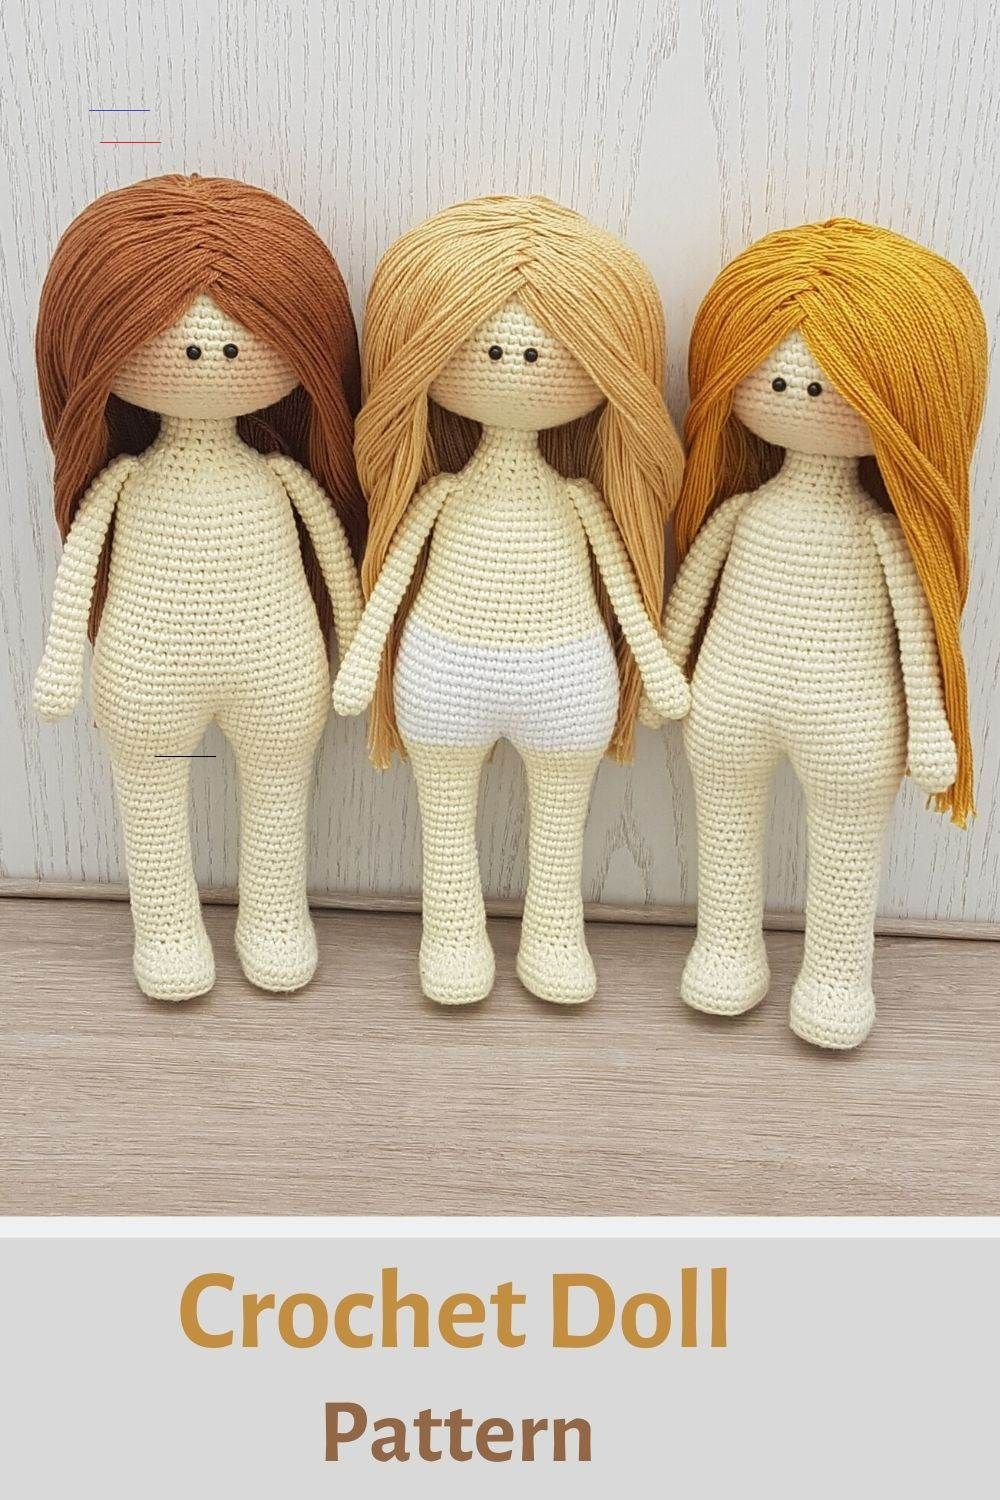 Trend Amigurumi Doll Patterns of March 2019 | Связаные крючком ... | 1500x1000